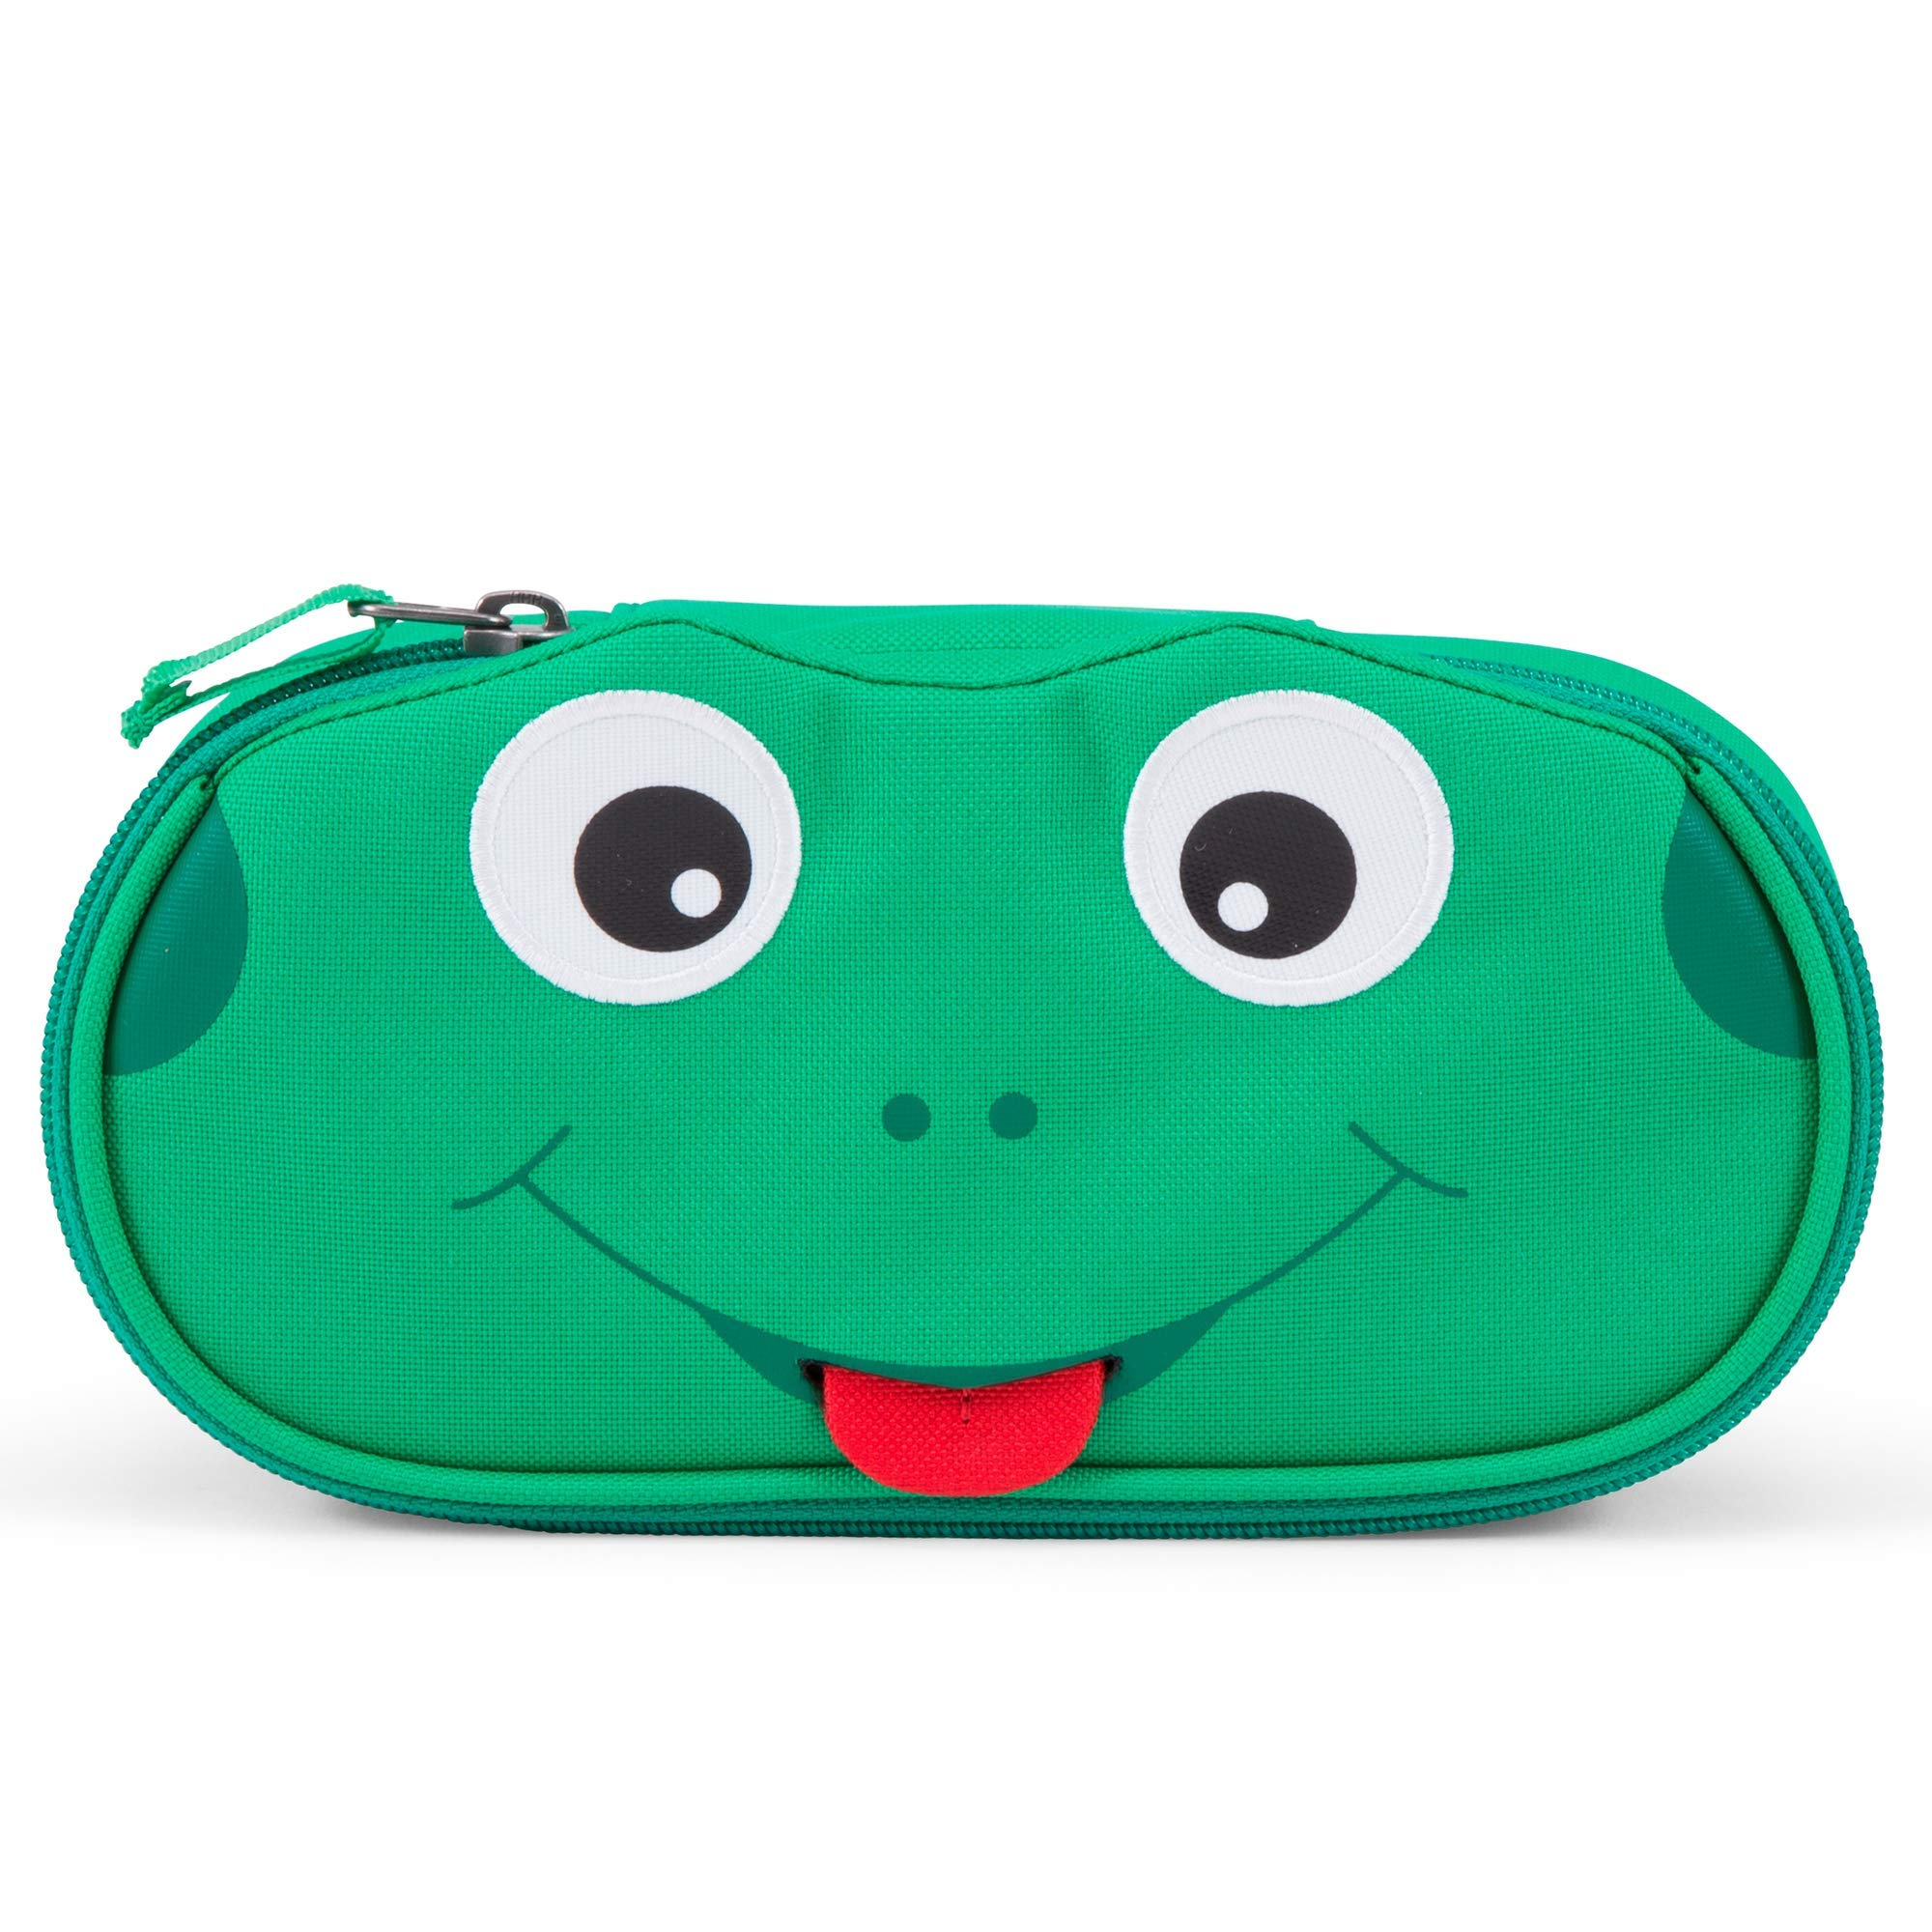 Affenzahn Pencil case for 1-5 Year Old Girls and Boys in Nursery and Kita Fynn Frog